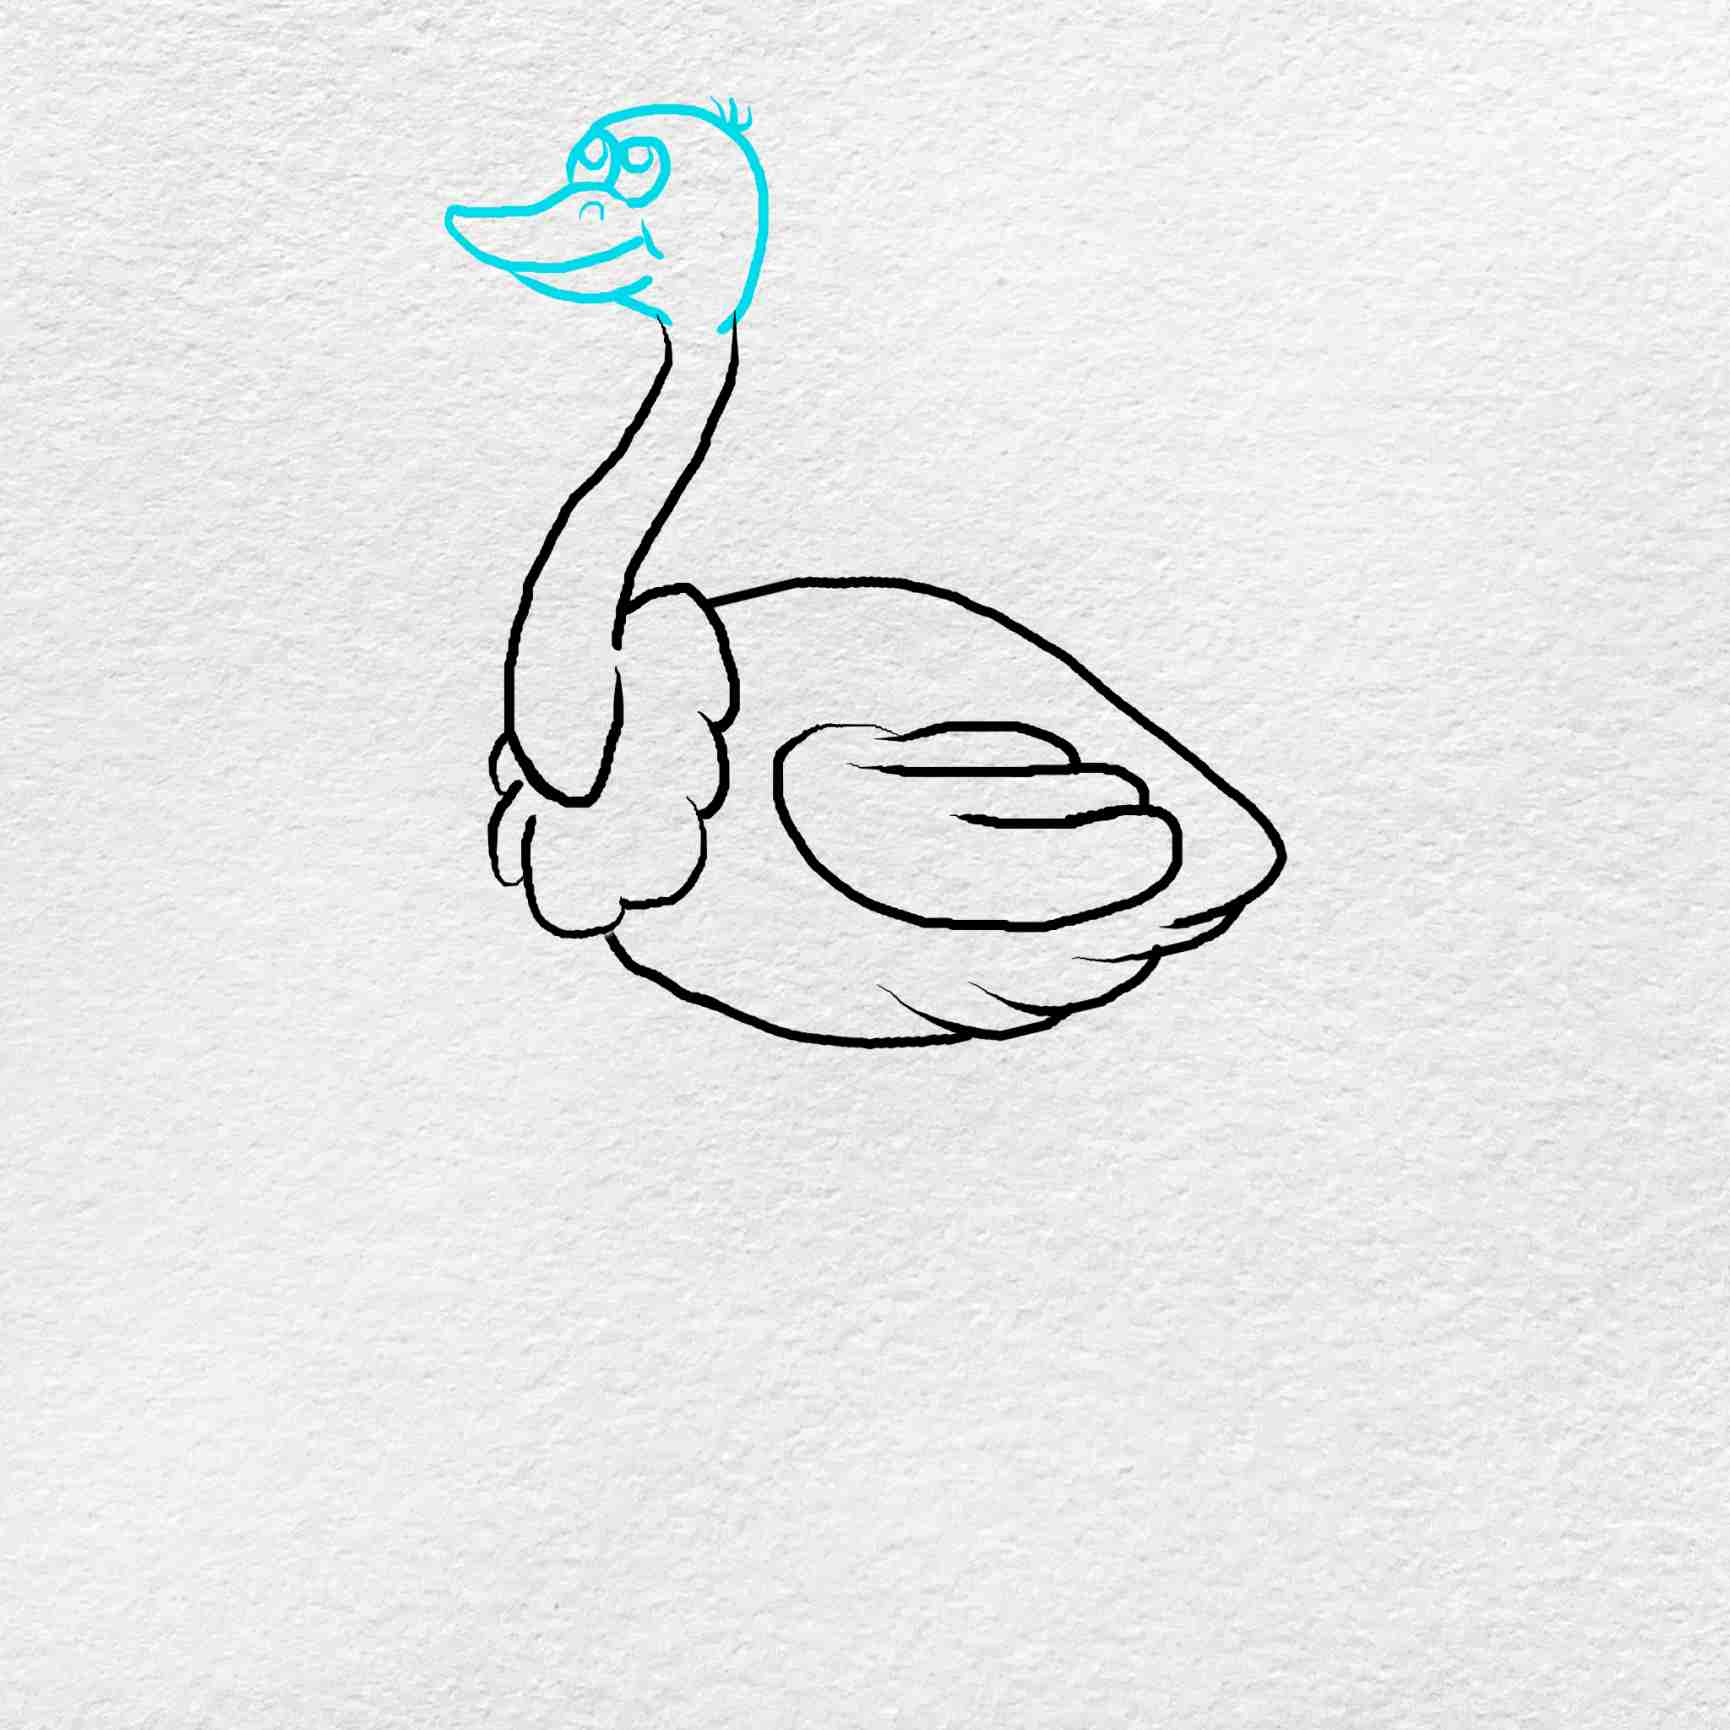 How To Draw An Ostrich: Step 4